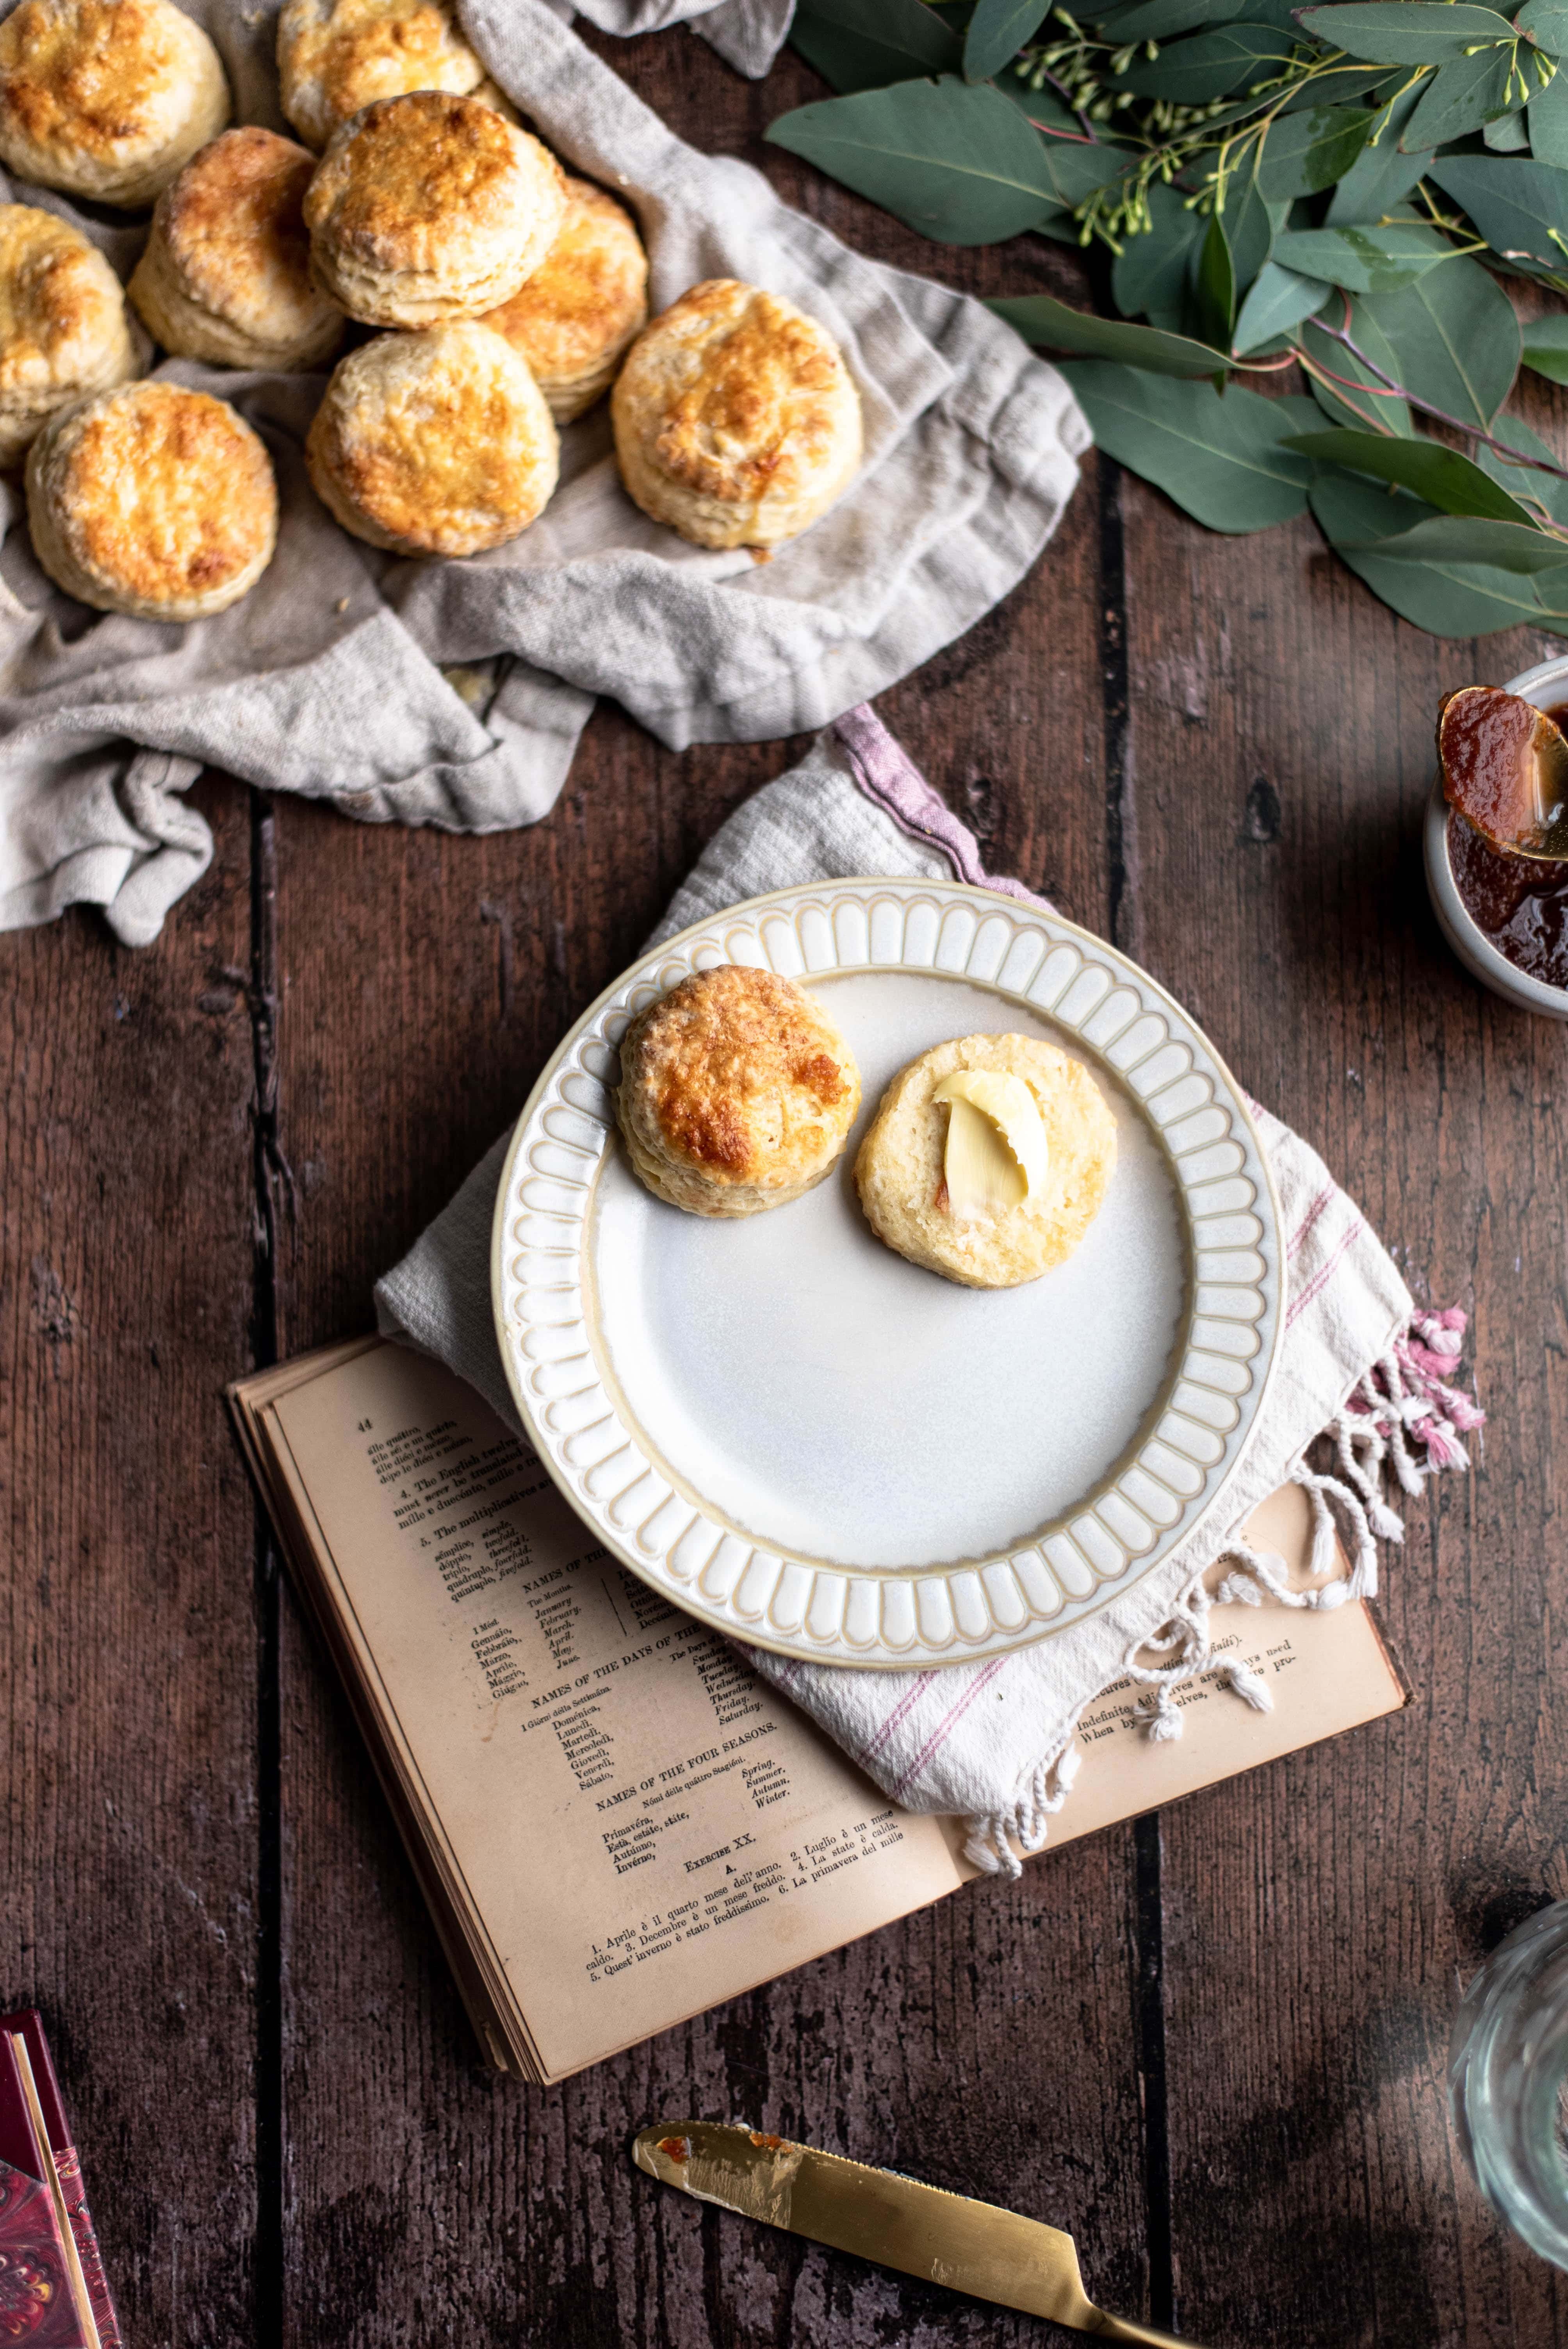 Biscuits on a cream plate with butter smeared in on one on top of a wood table with a old book.